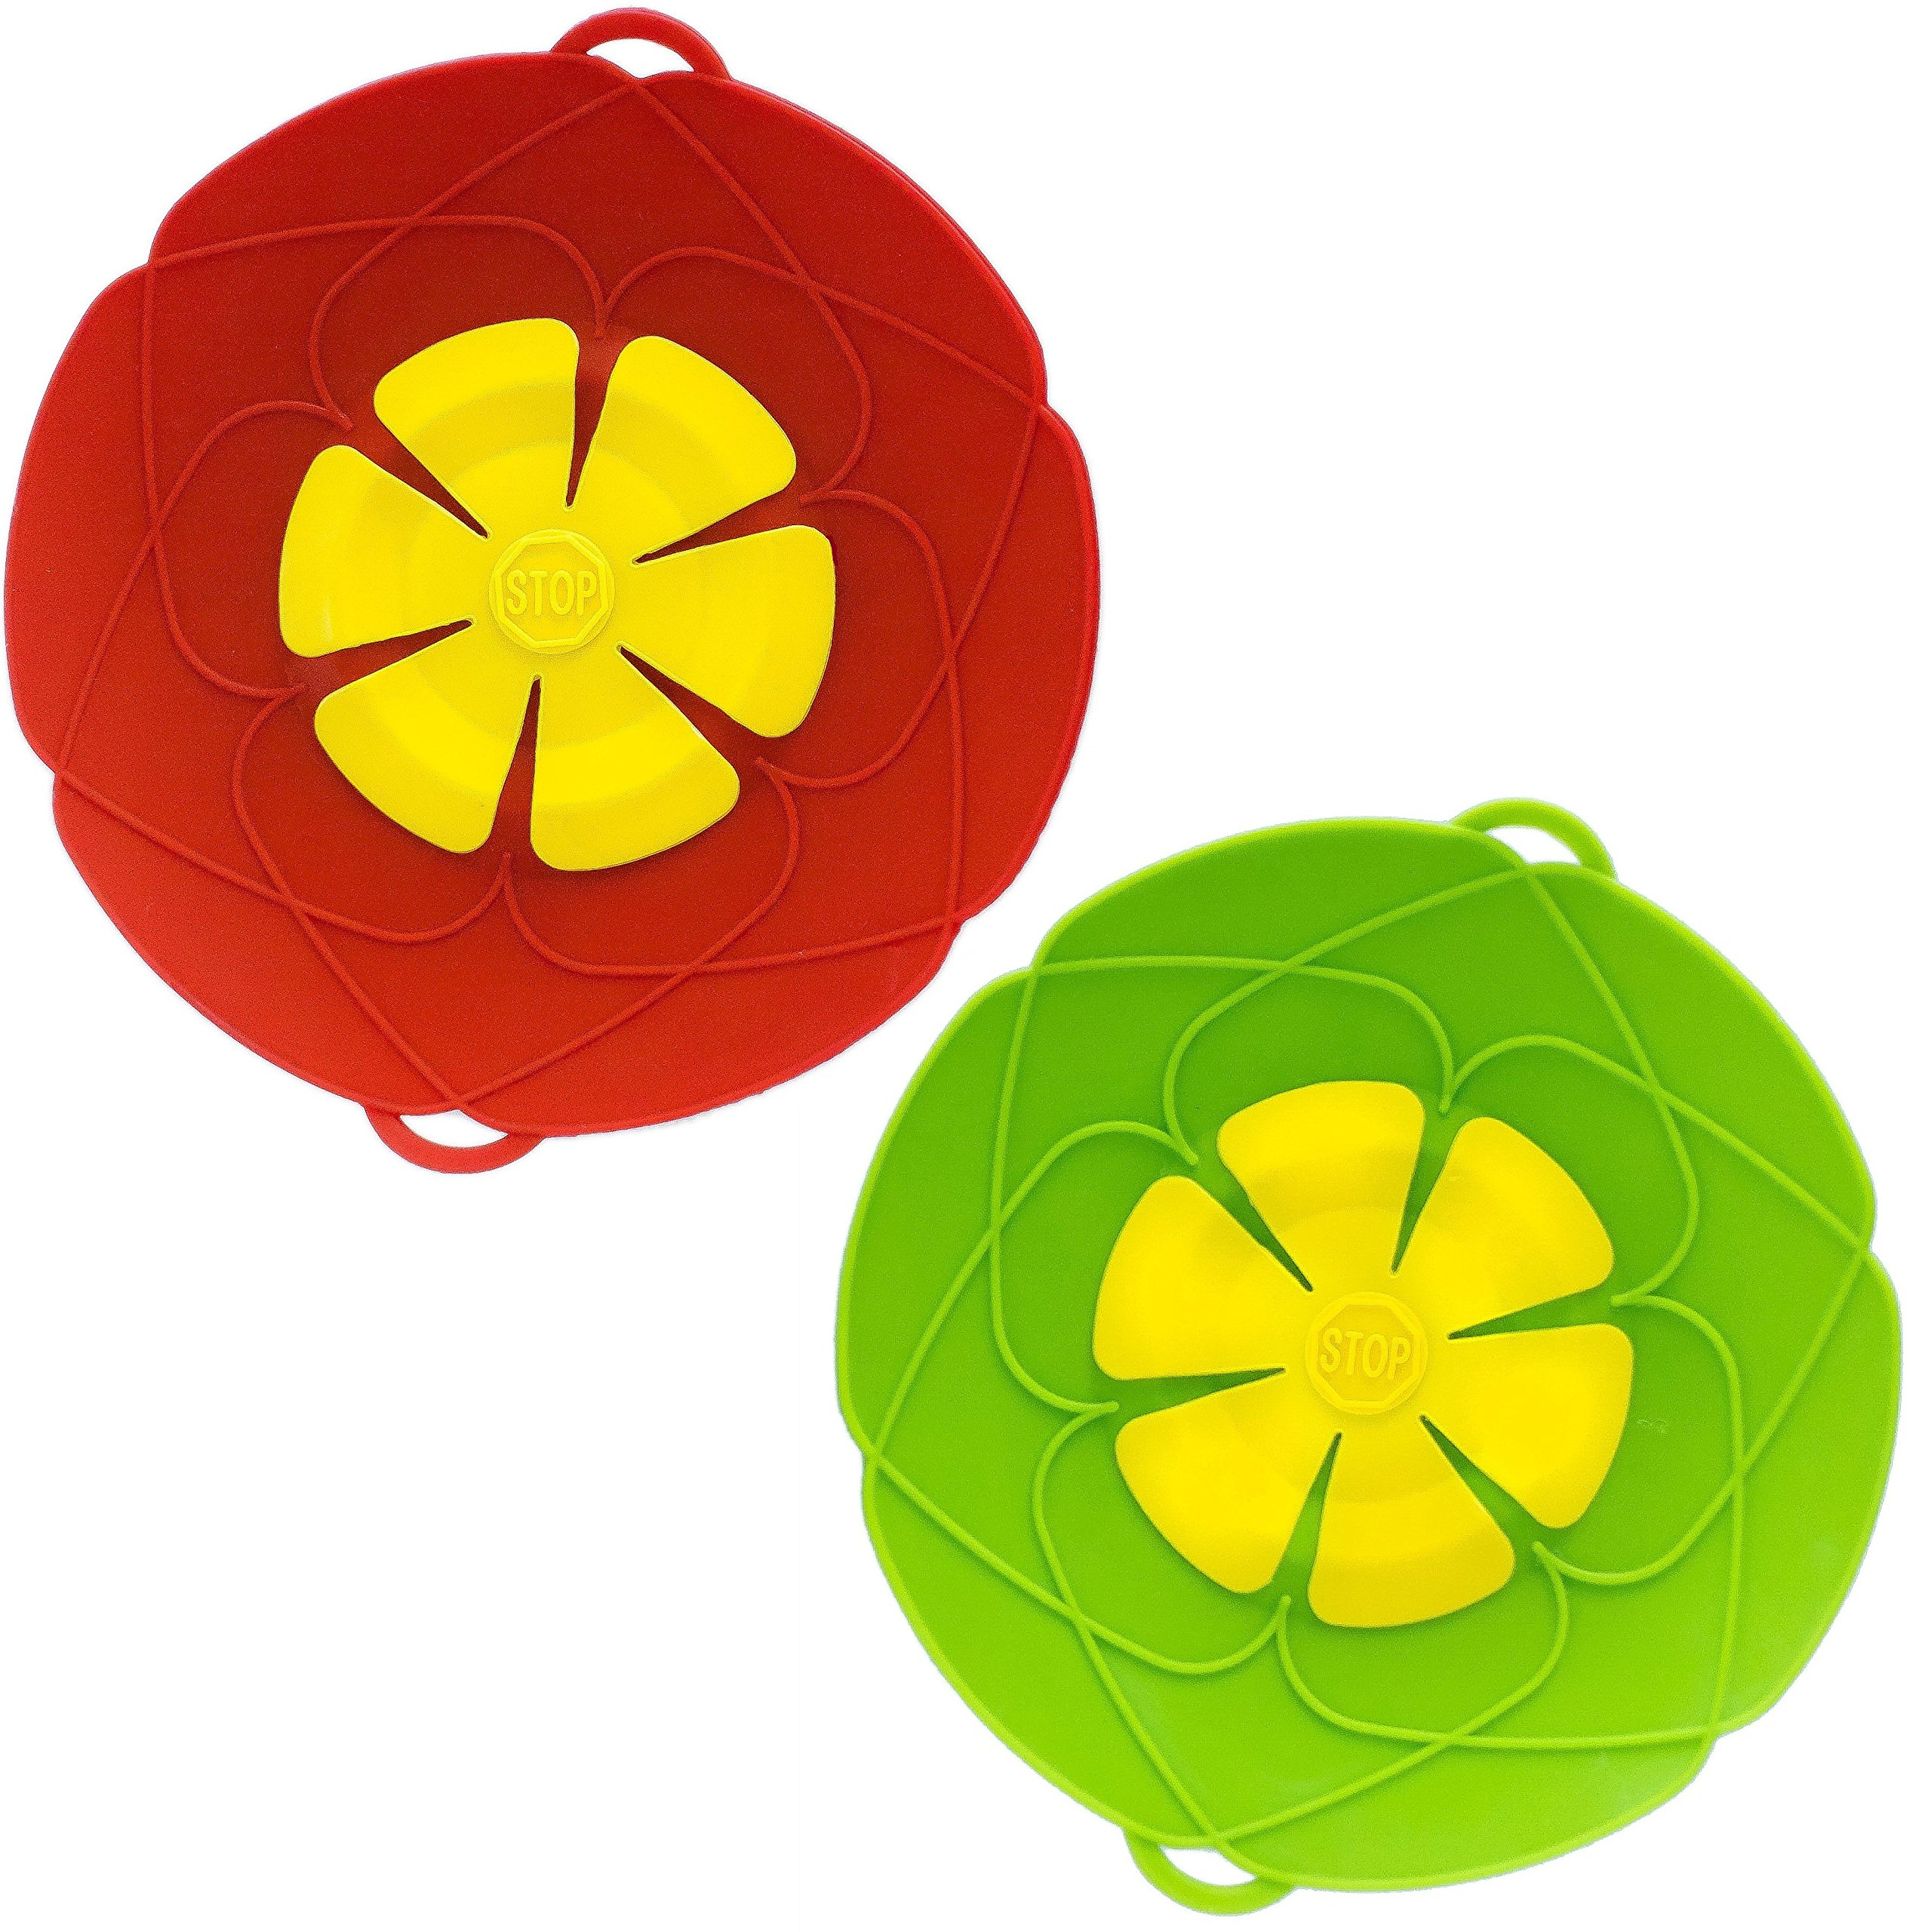 PureGenius Spill Stopper X 2, 10.2-Inch Silicone Lid for Pots And Pans, Boil-Over Stopper, Boil Safeguard, Multipurpose Kitchen Tool. (2, Red-Green)